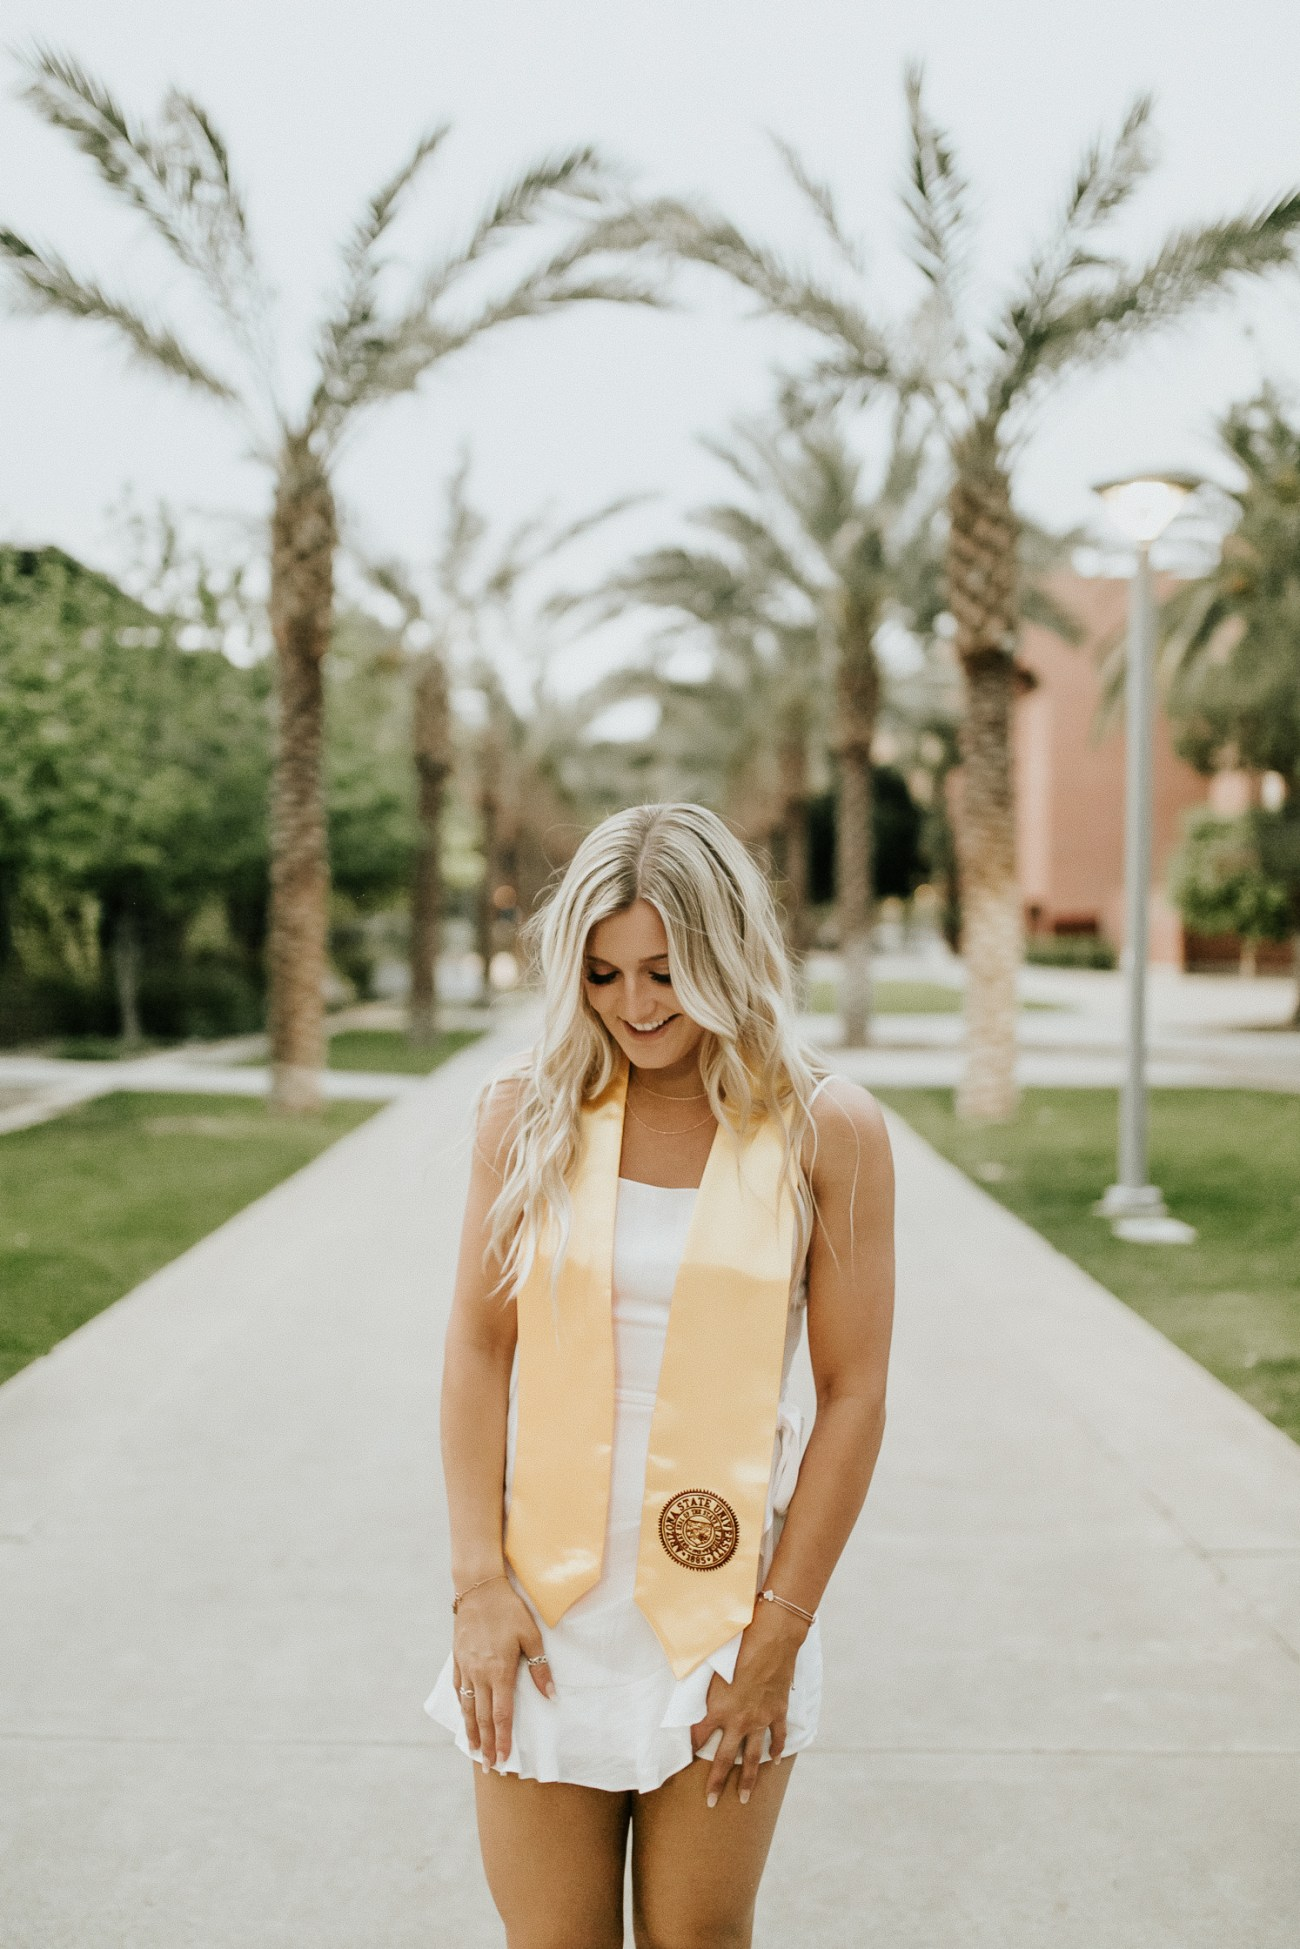 Megan Claire Photography | Phoenix Arizona Wedding and Engagement Photographer. Arizona State University grad photoshoot. Graduation photos at Old Main @meganclairephoto